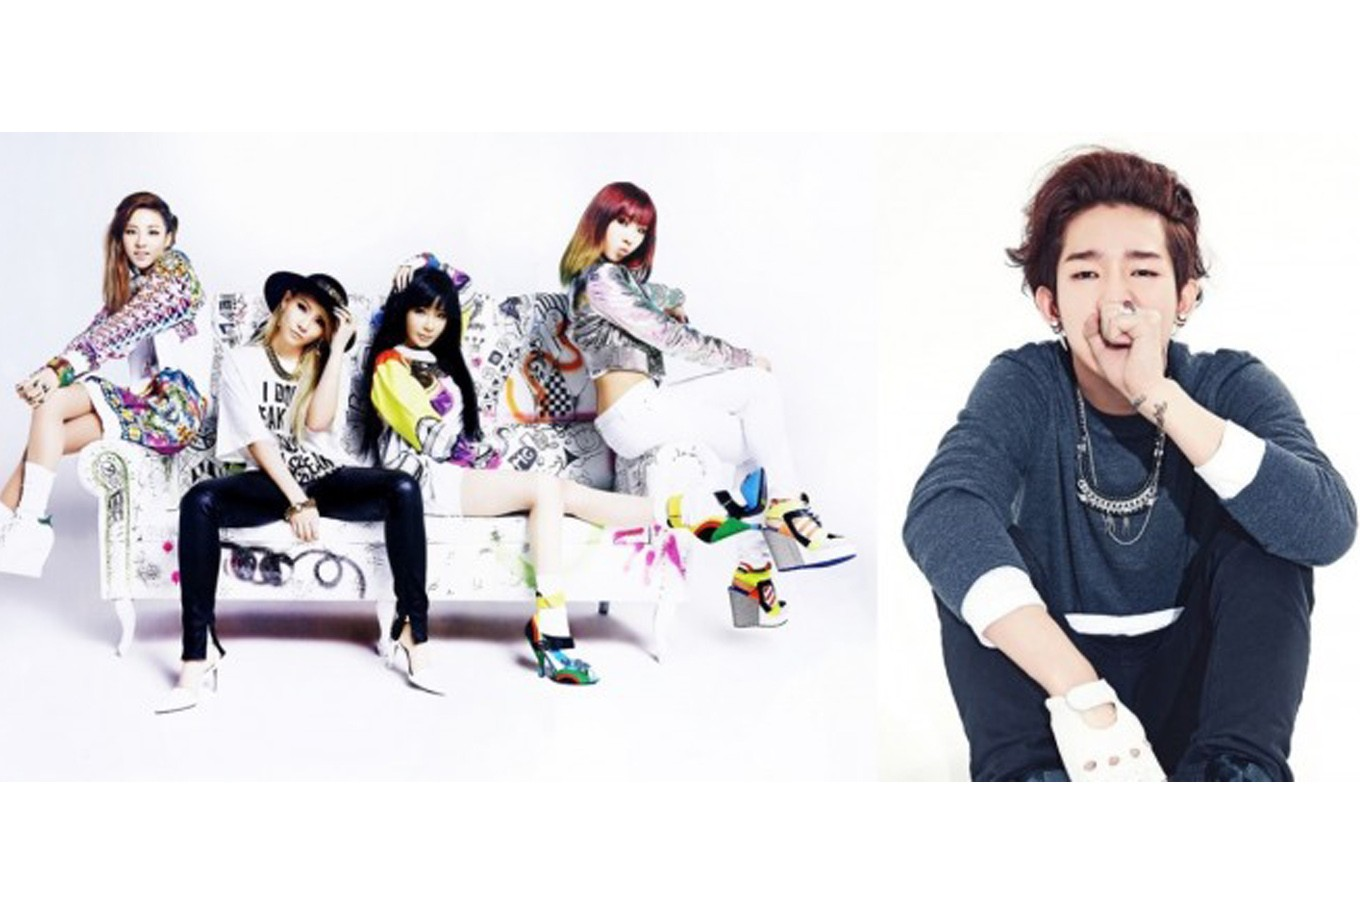 YG under fire after 2NE1 disbanding and Taehyun leaving